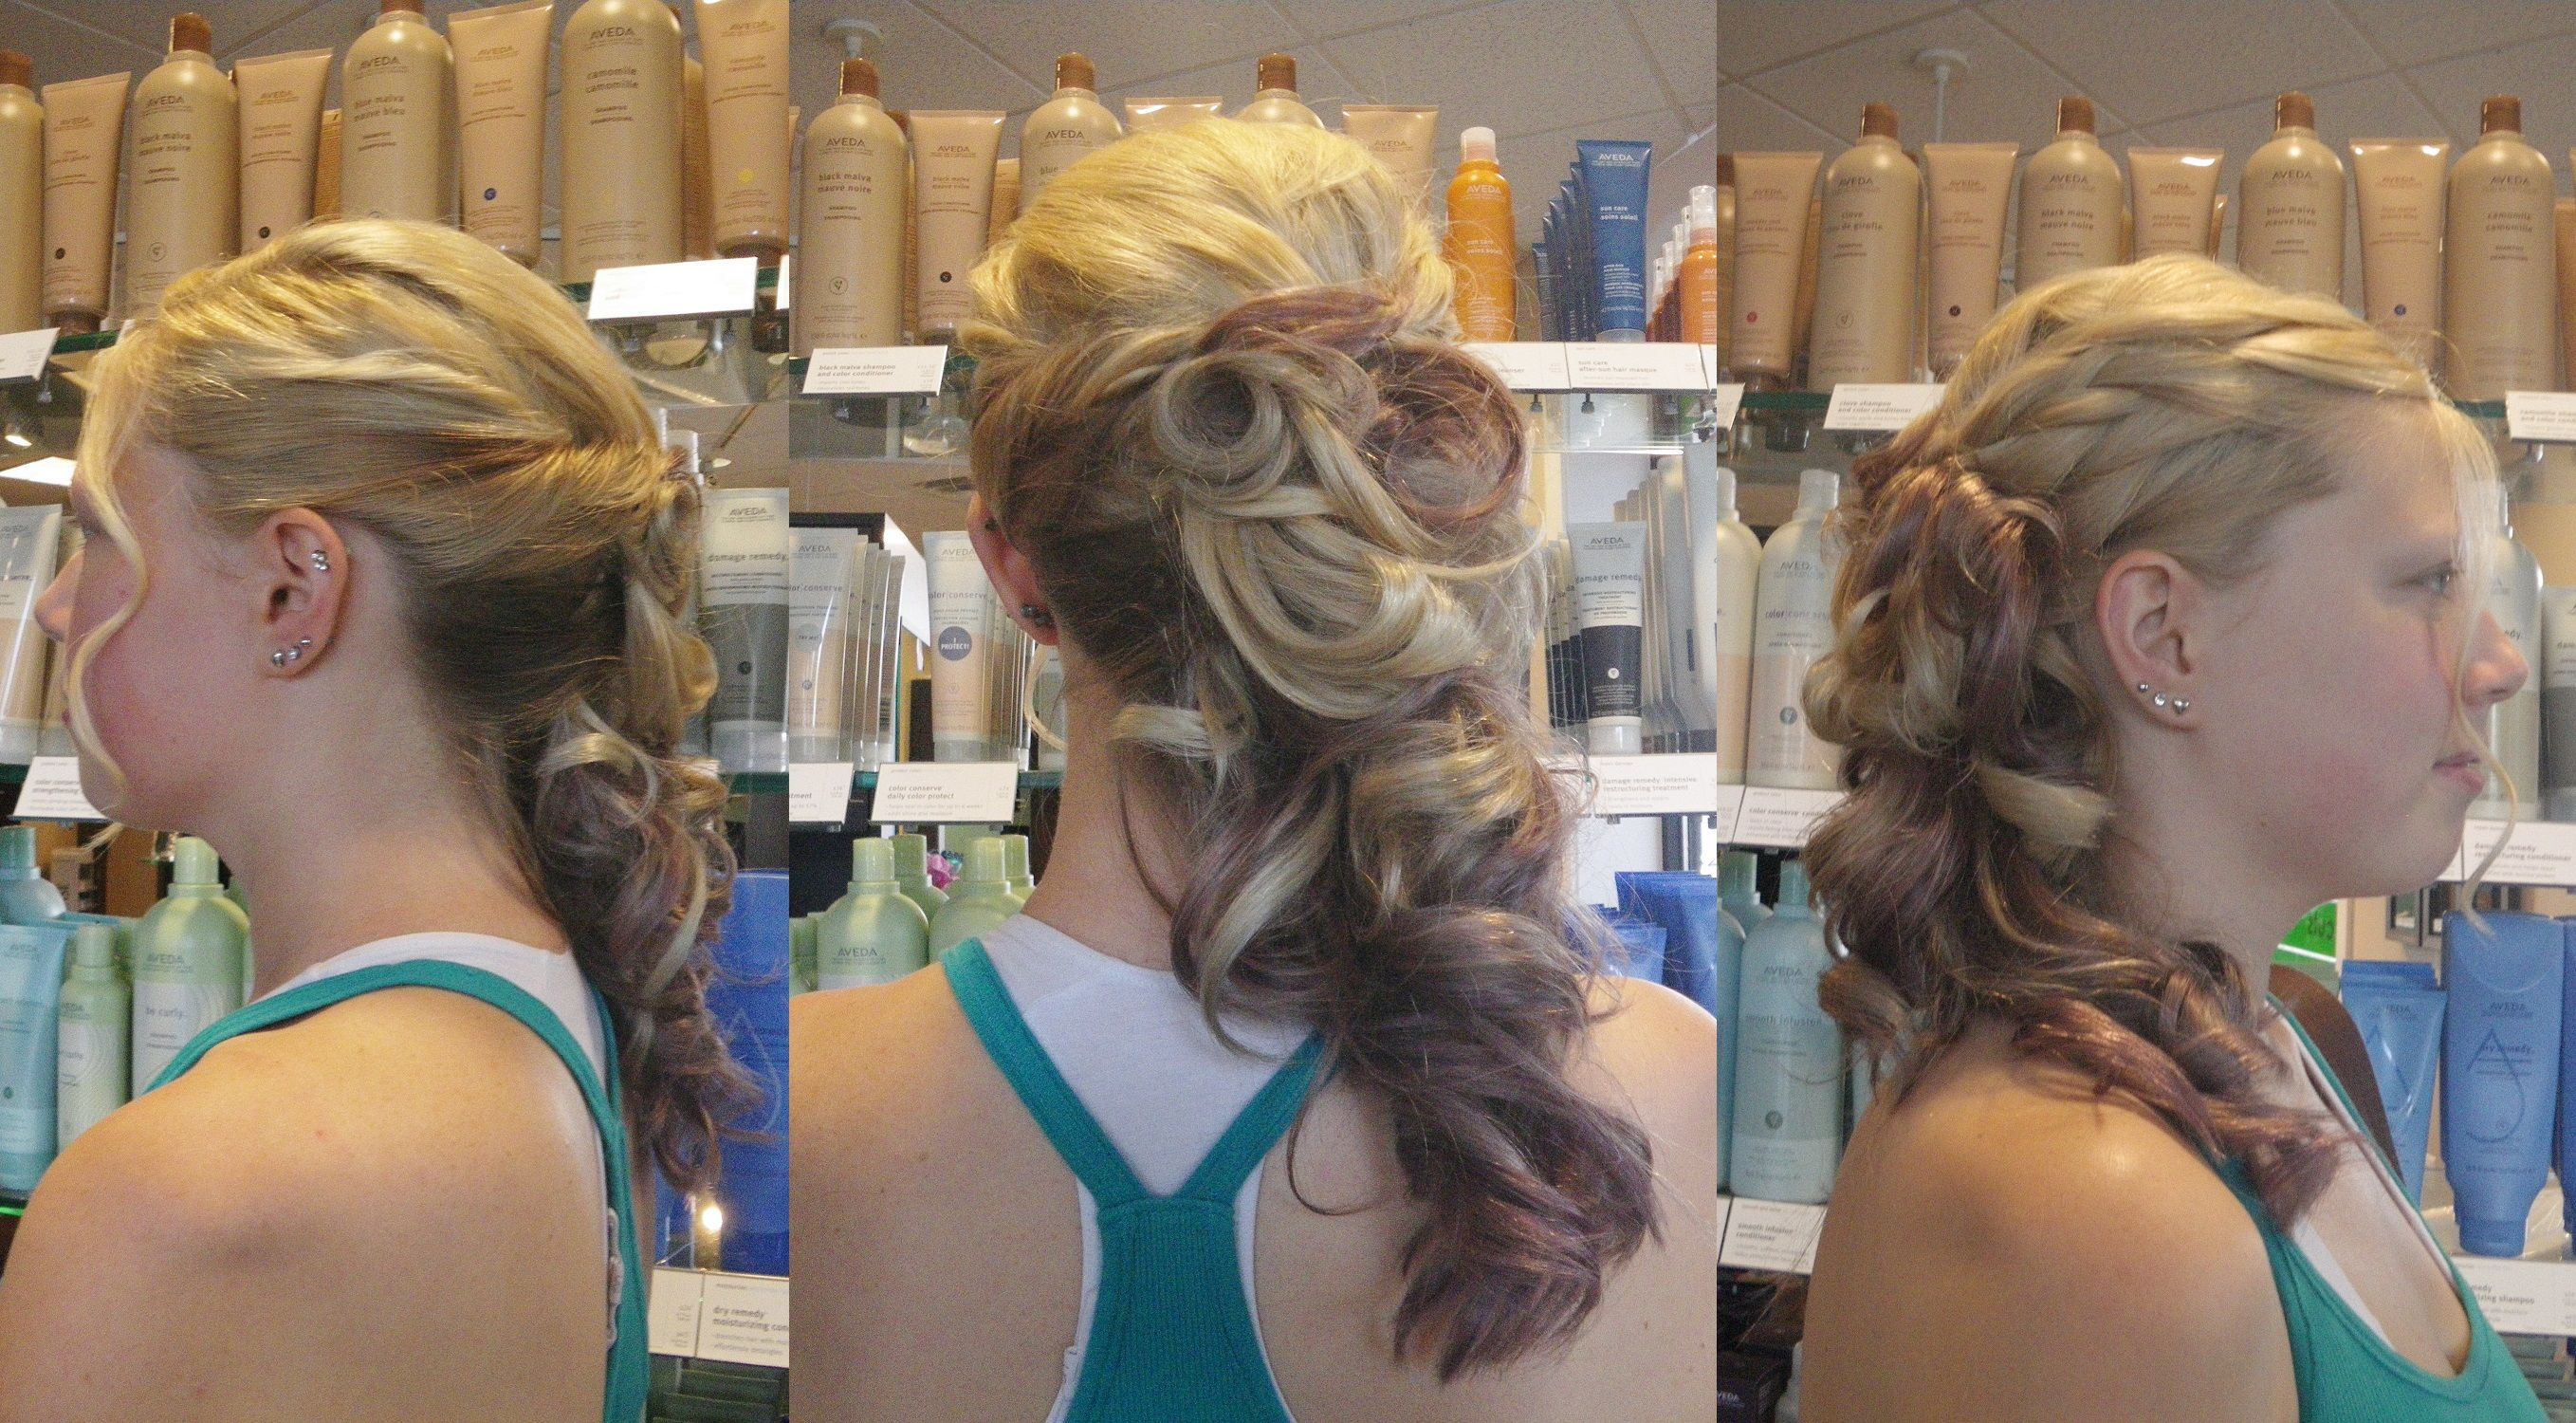 a lovely updo with some intricate braiding through the top... notice her burgundy-purple color sneaking in the mix of curls!